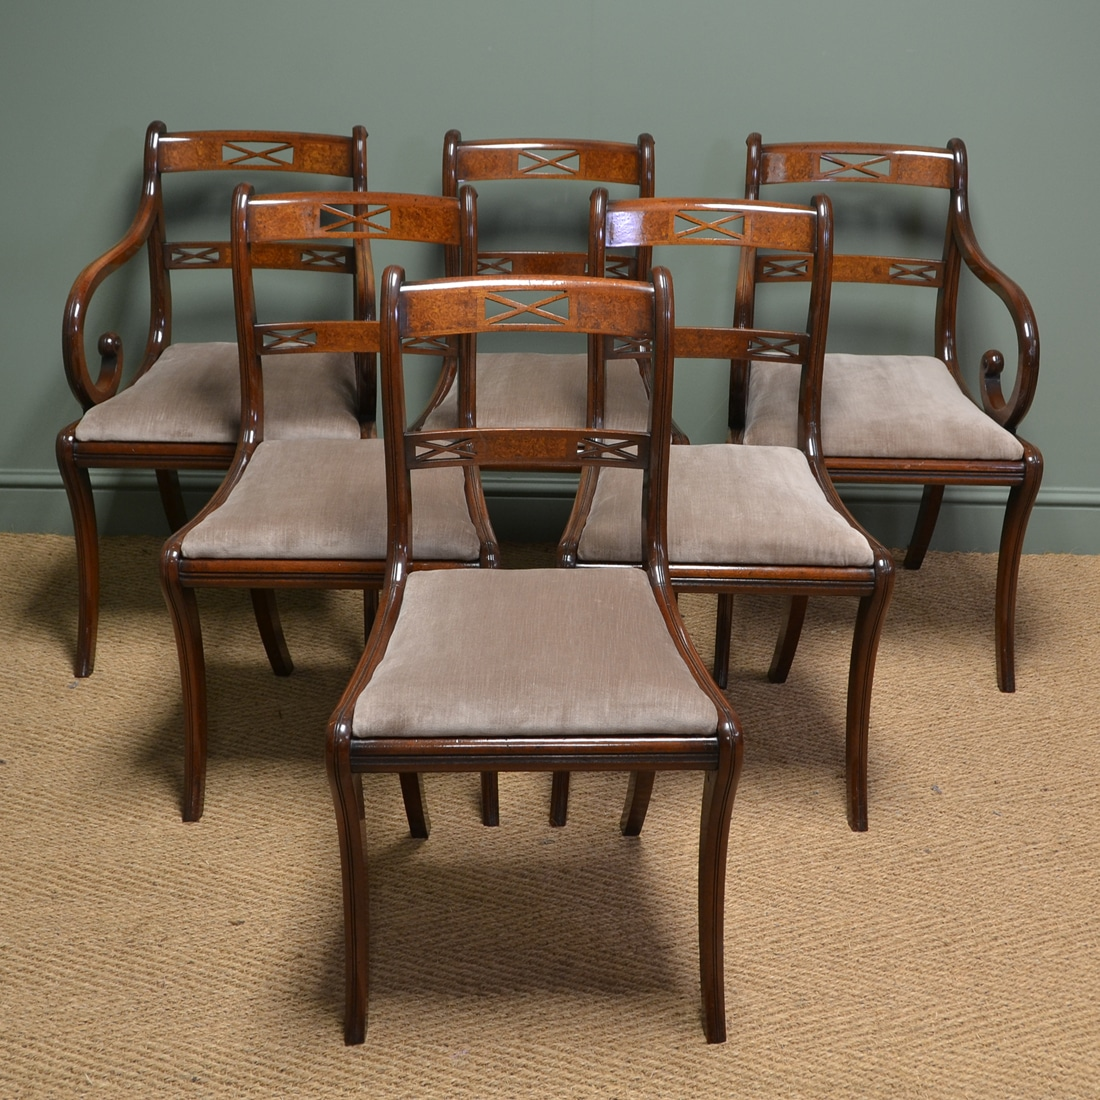 Elegant Regency Design Mahogany Double Sabre Leg Set Of 6 Antique Dining Chairs Antiques World